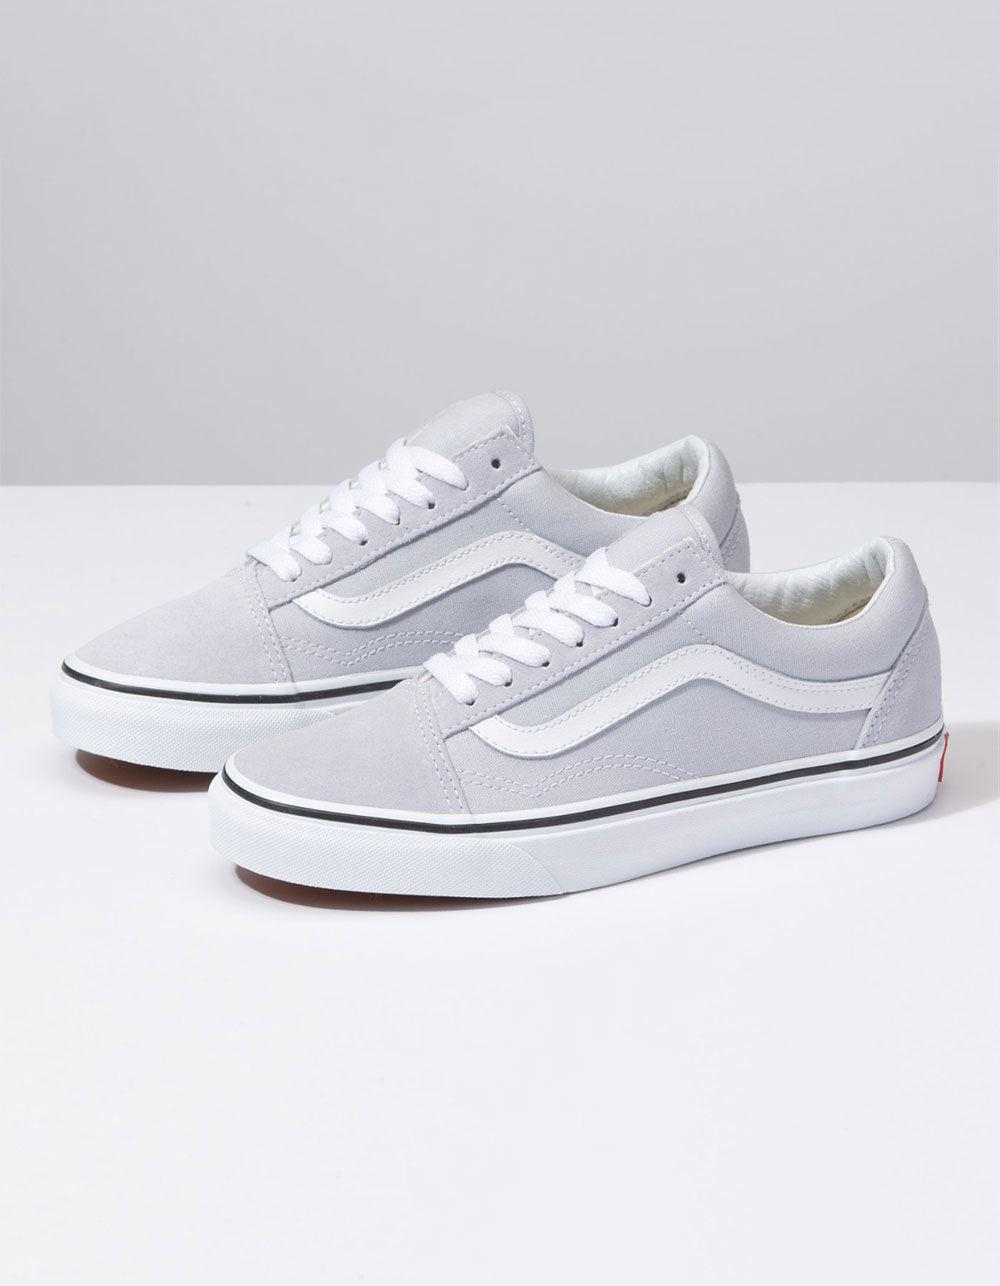 49b920a3f05 Lyst - Vans Old Skool Gray Dawn   True White Womens Shoes in White